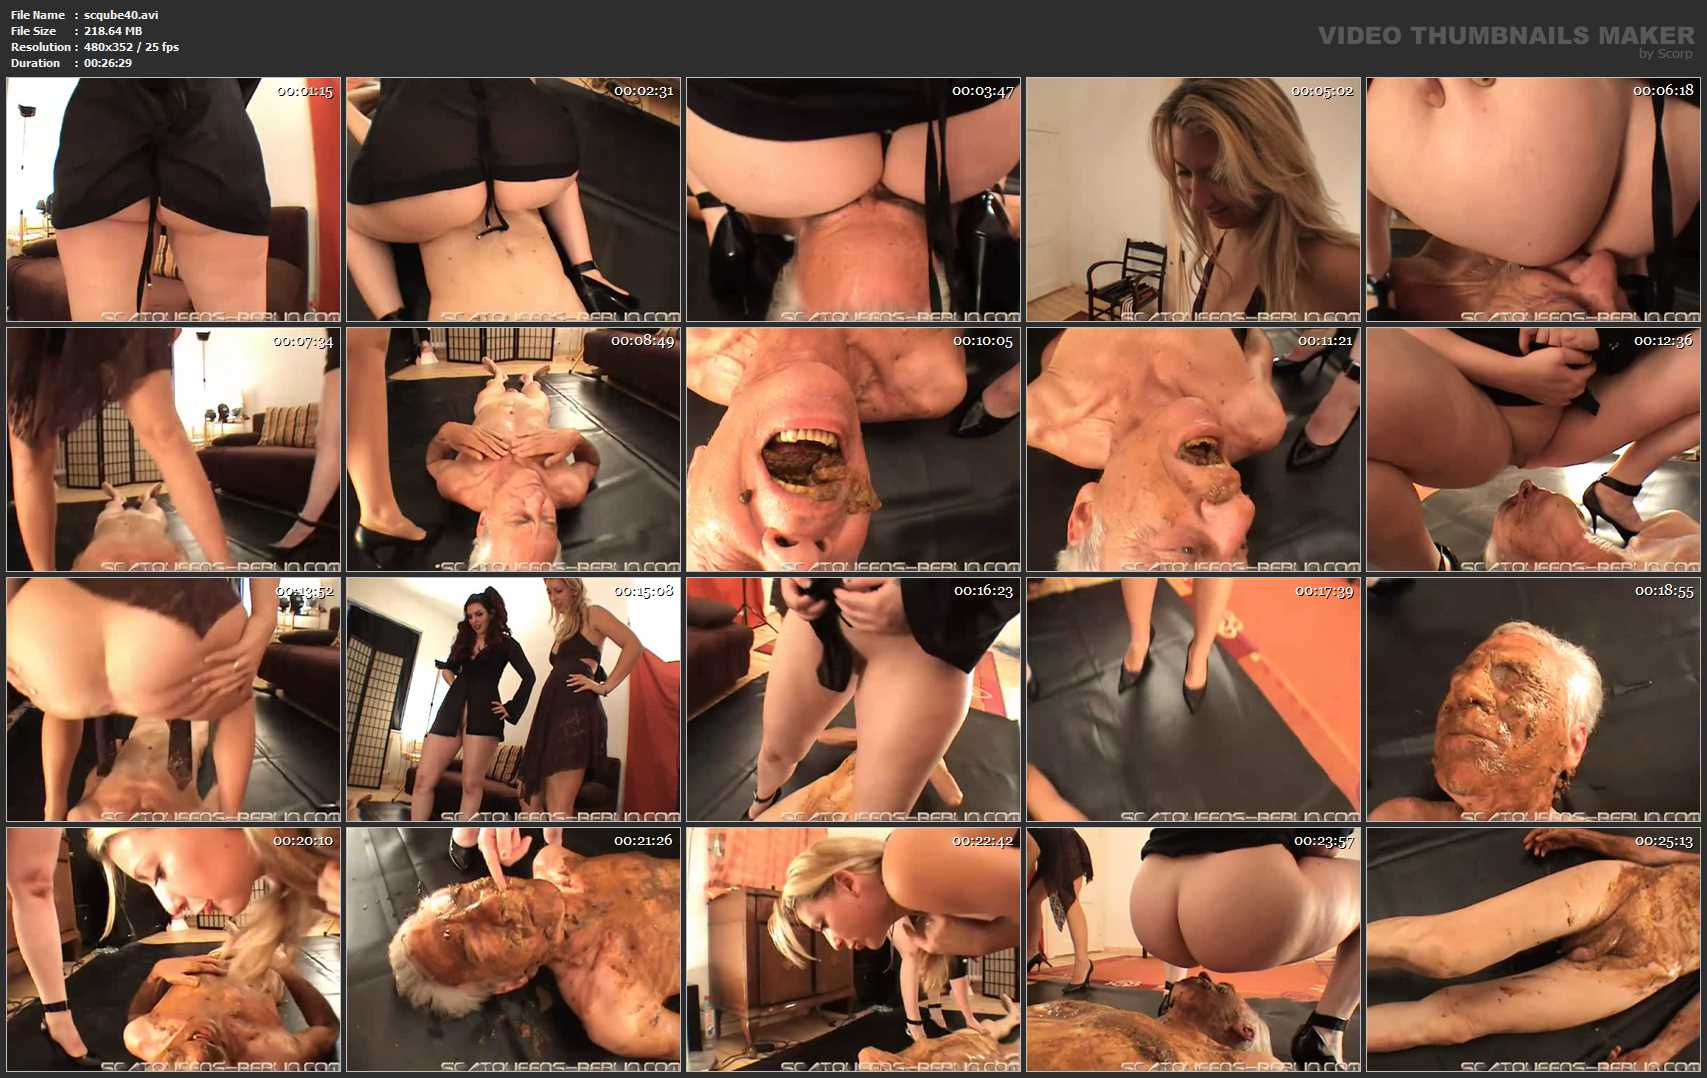 [SCATQUEENS-BERLIN] Lisa Anderson First Time Scat [LQ][352p][AVI]